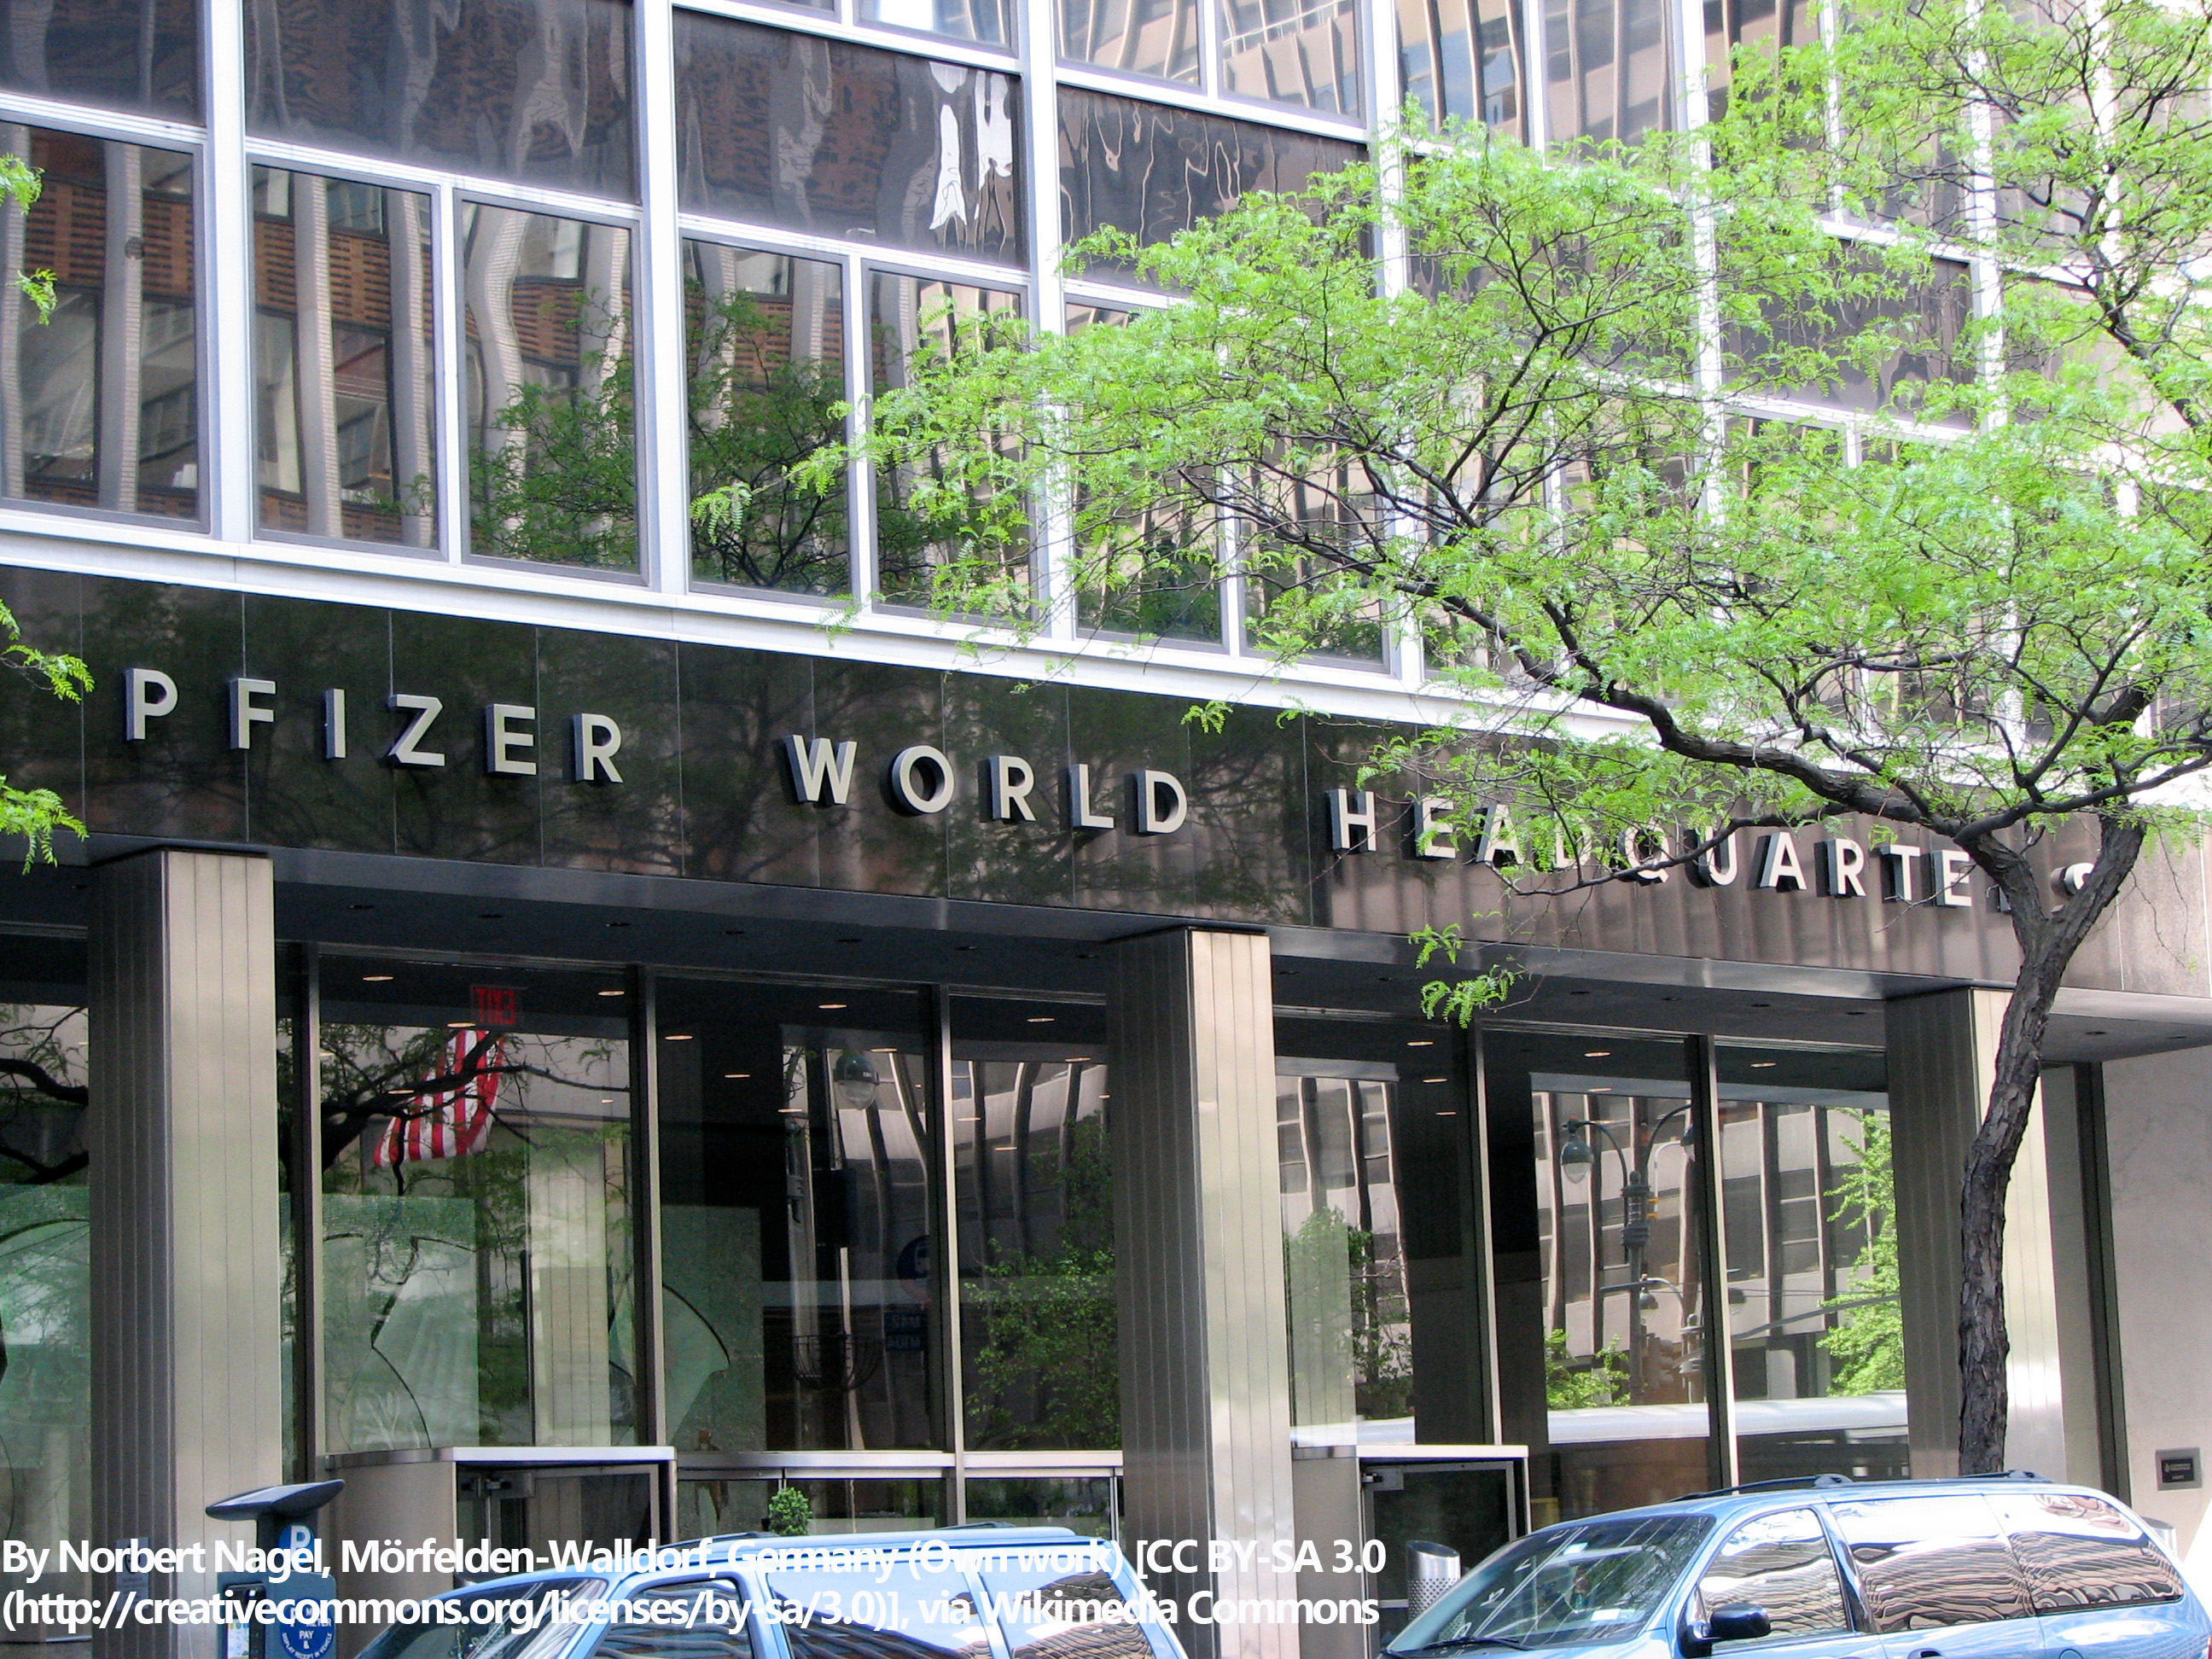 Https Idx Dr Becomes First Fda Approved Ai Based Fileshort Circuit Testjpg Wikimedia Commons Pfizer600